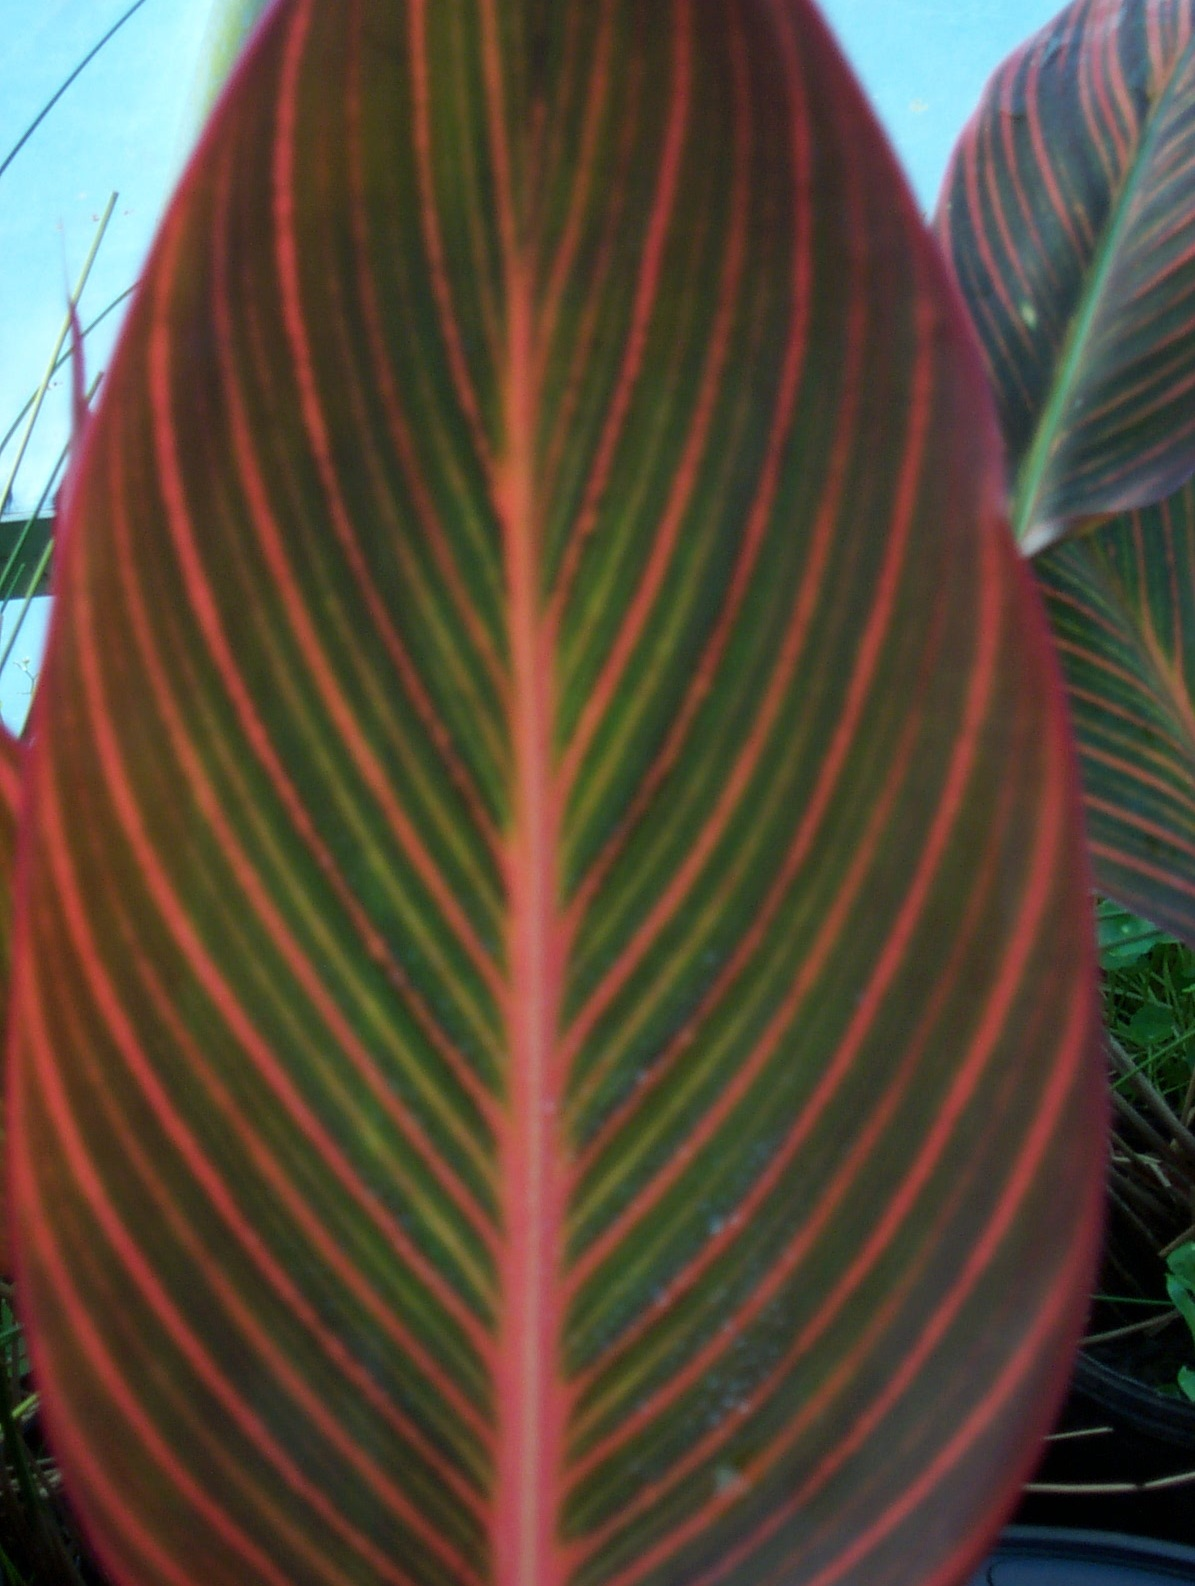 Canna African Sunset Leaves